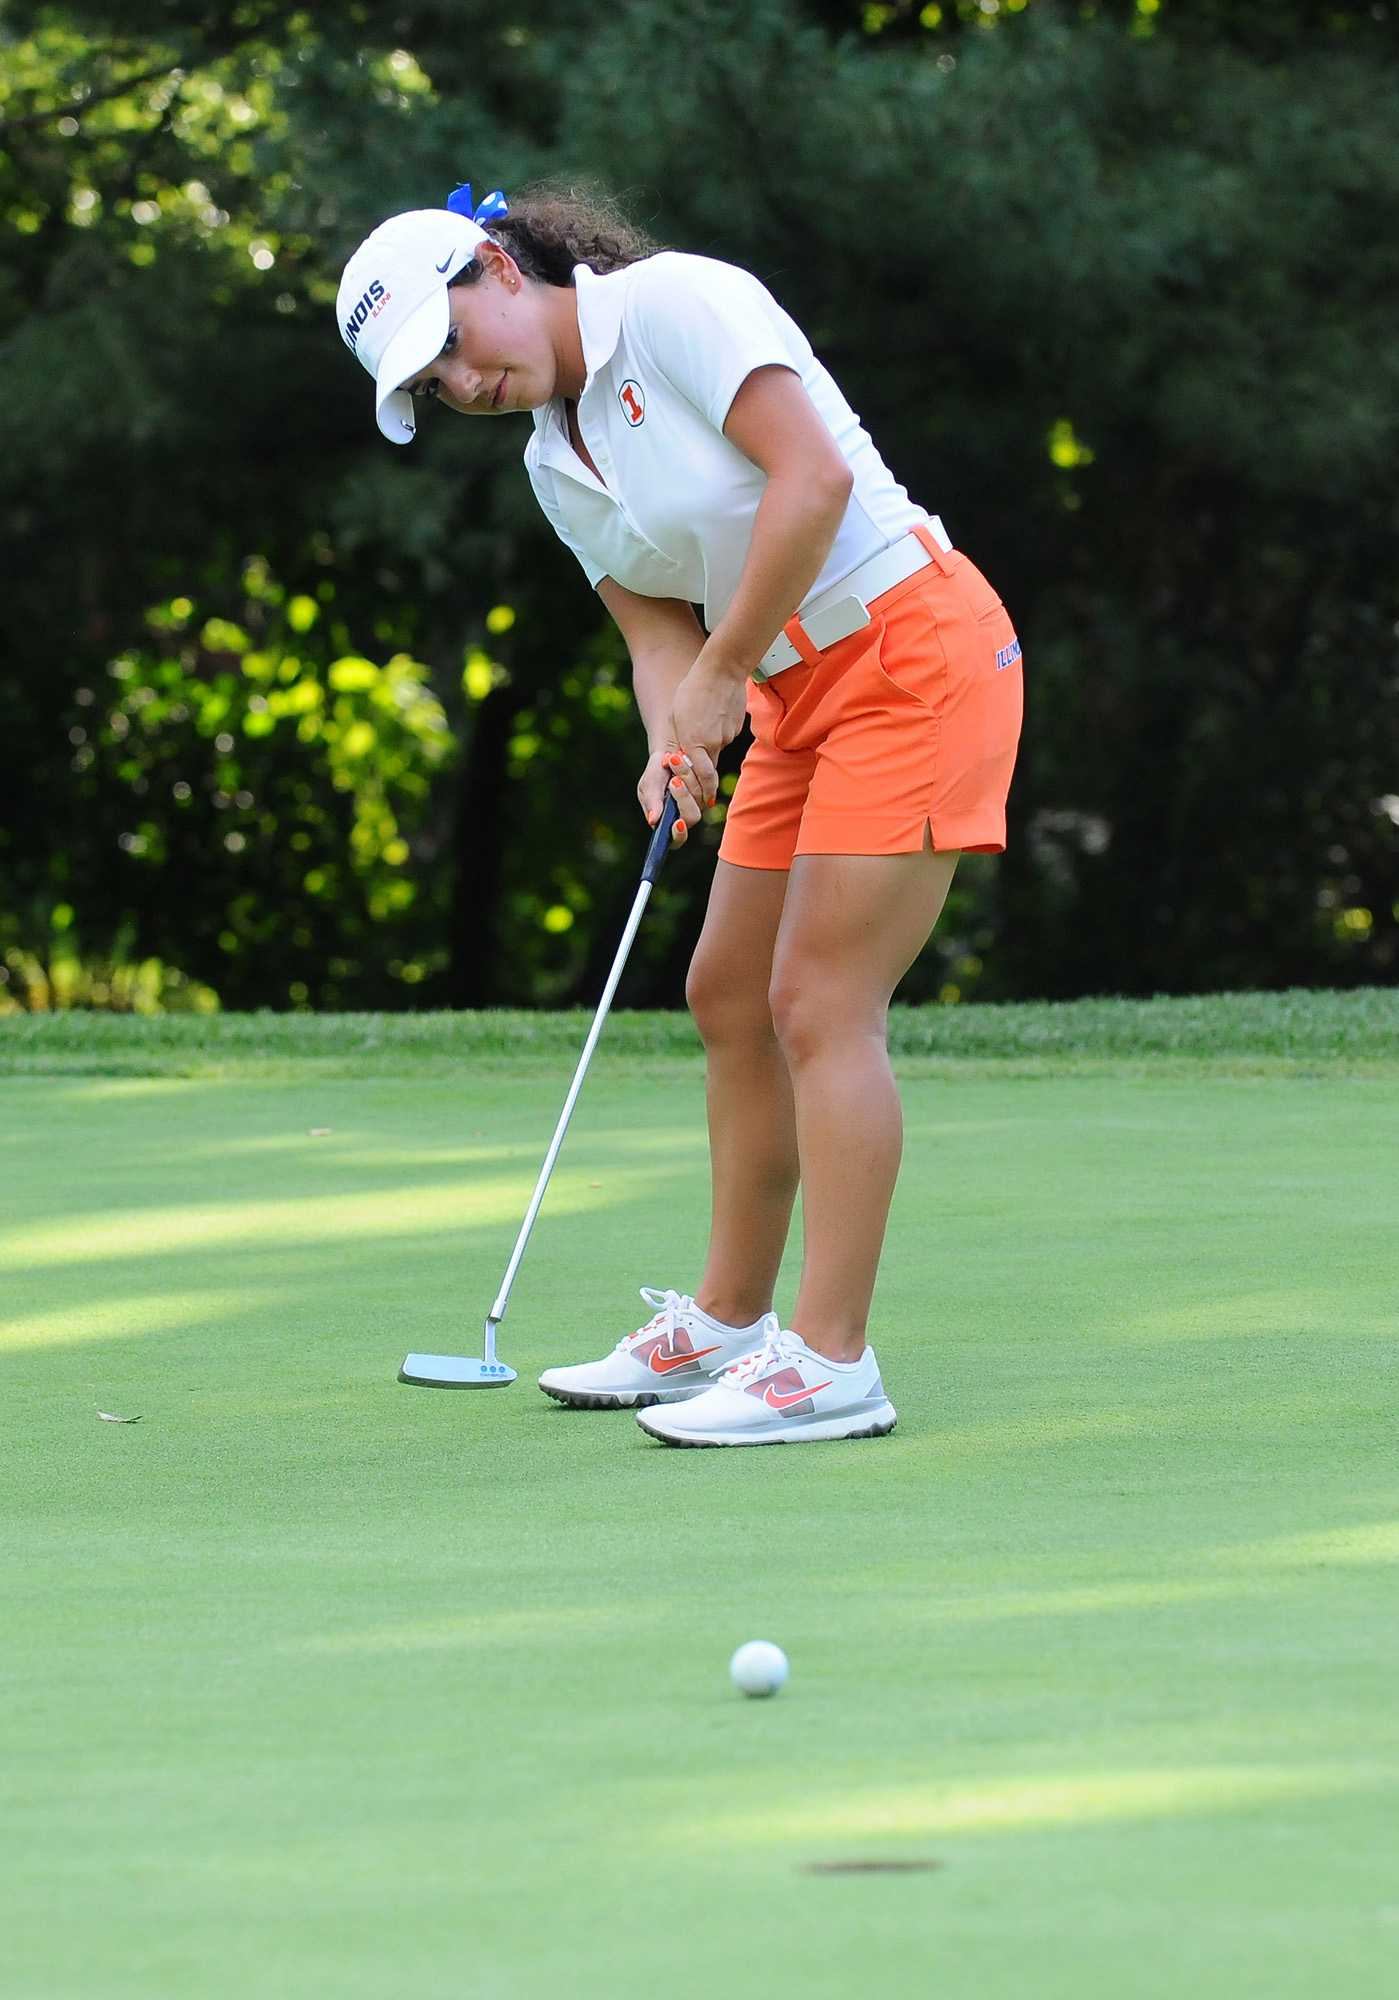 Illini women's golfer Dana Gattone tracks a putt. Gattone stands at 4 foot 10 inches and came to Illinois from Saint Viator High School.